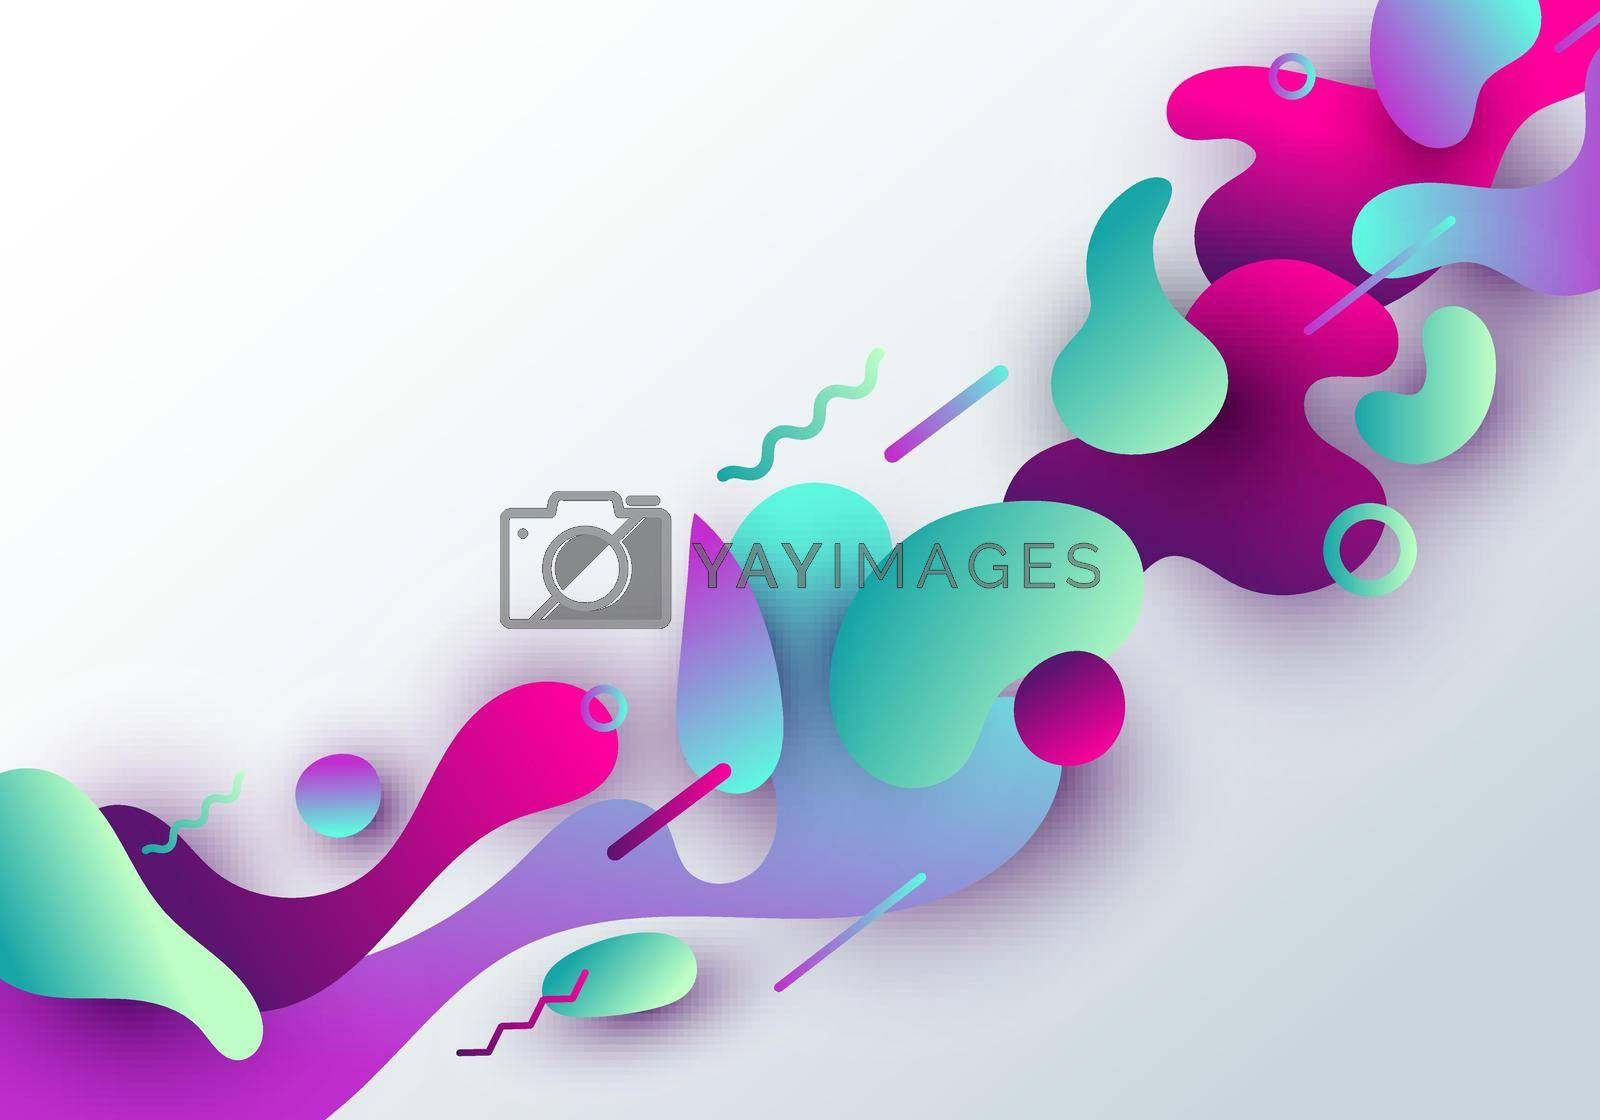 Royalty free image of Abstract fluid vibrant gradient shape with geometric design isolated on white background by phochi